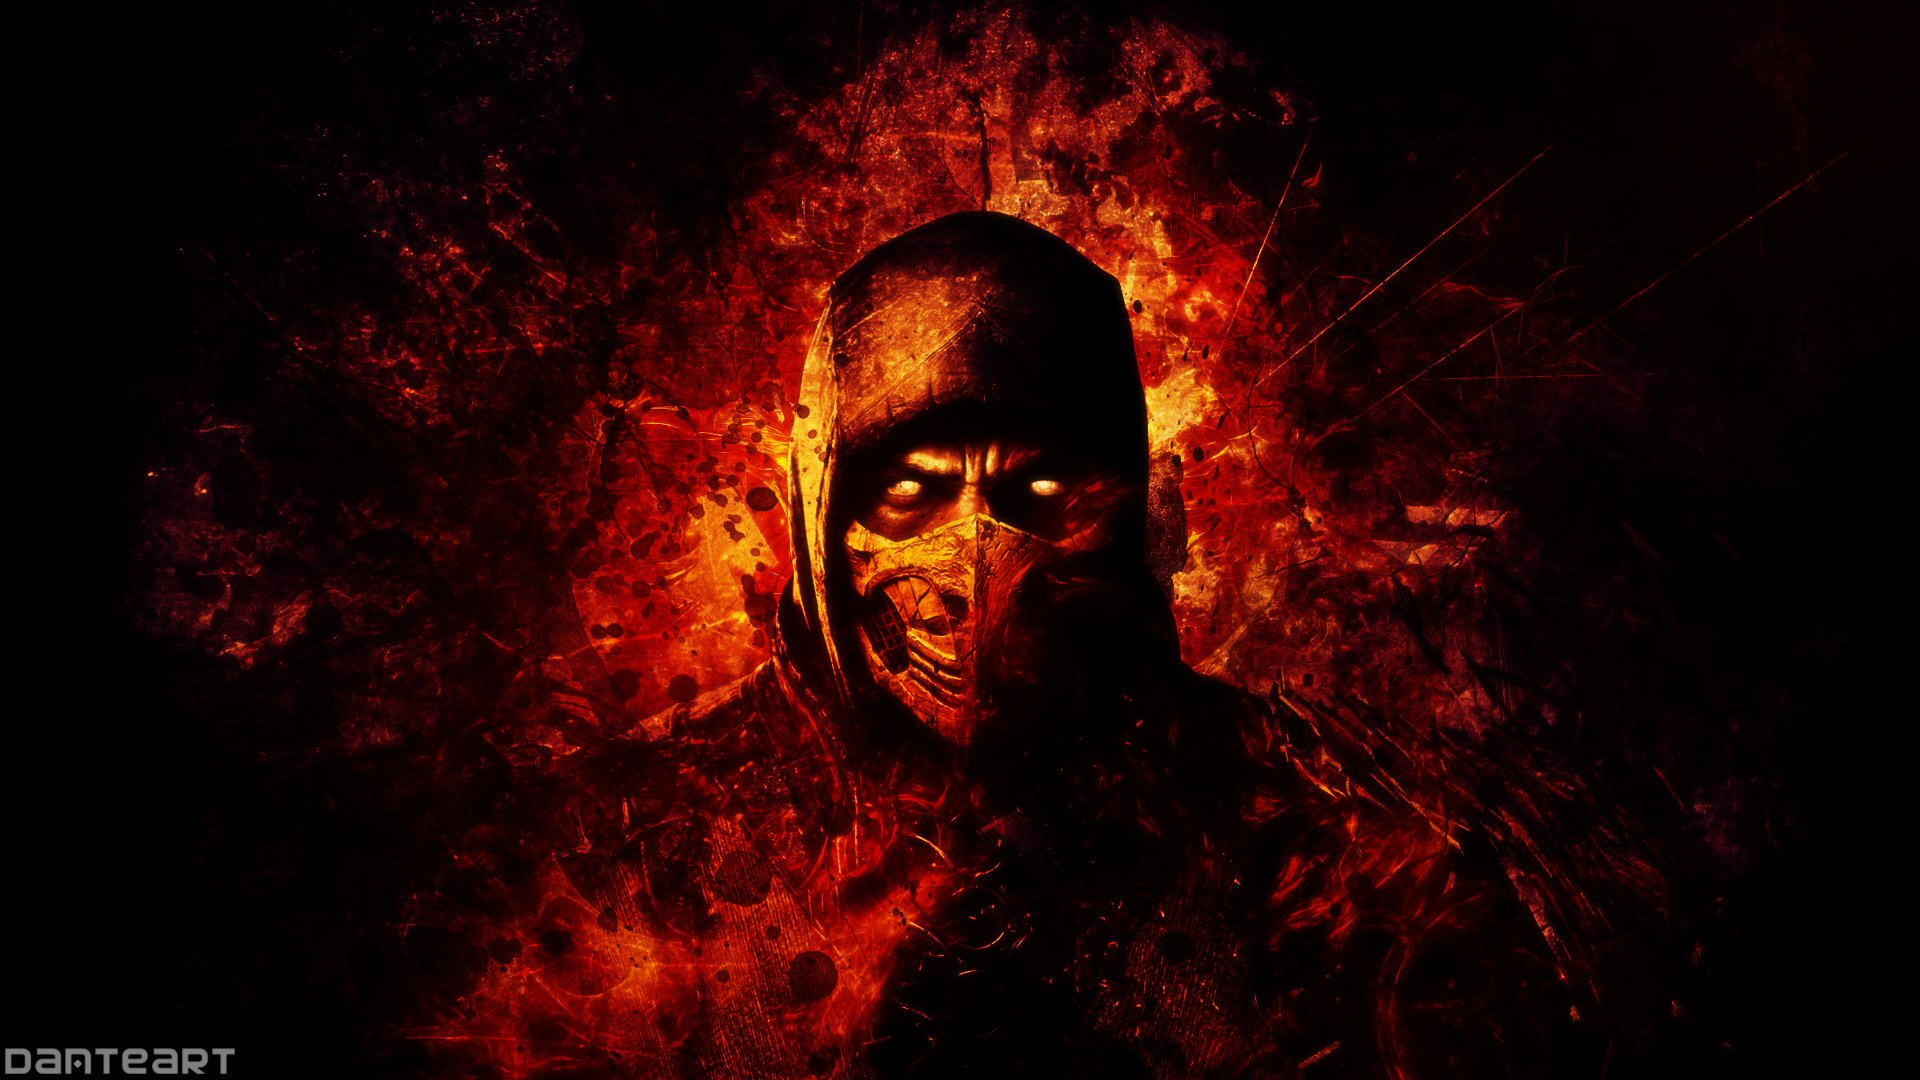 Mortal Kombat X Scorpion Wallpaper by DanteArtWallpapers 1920x1080